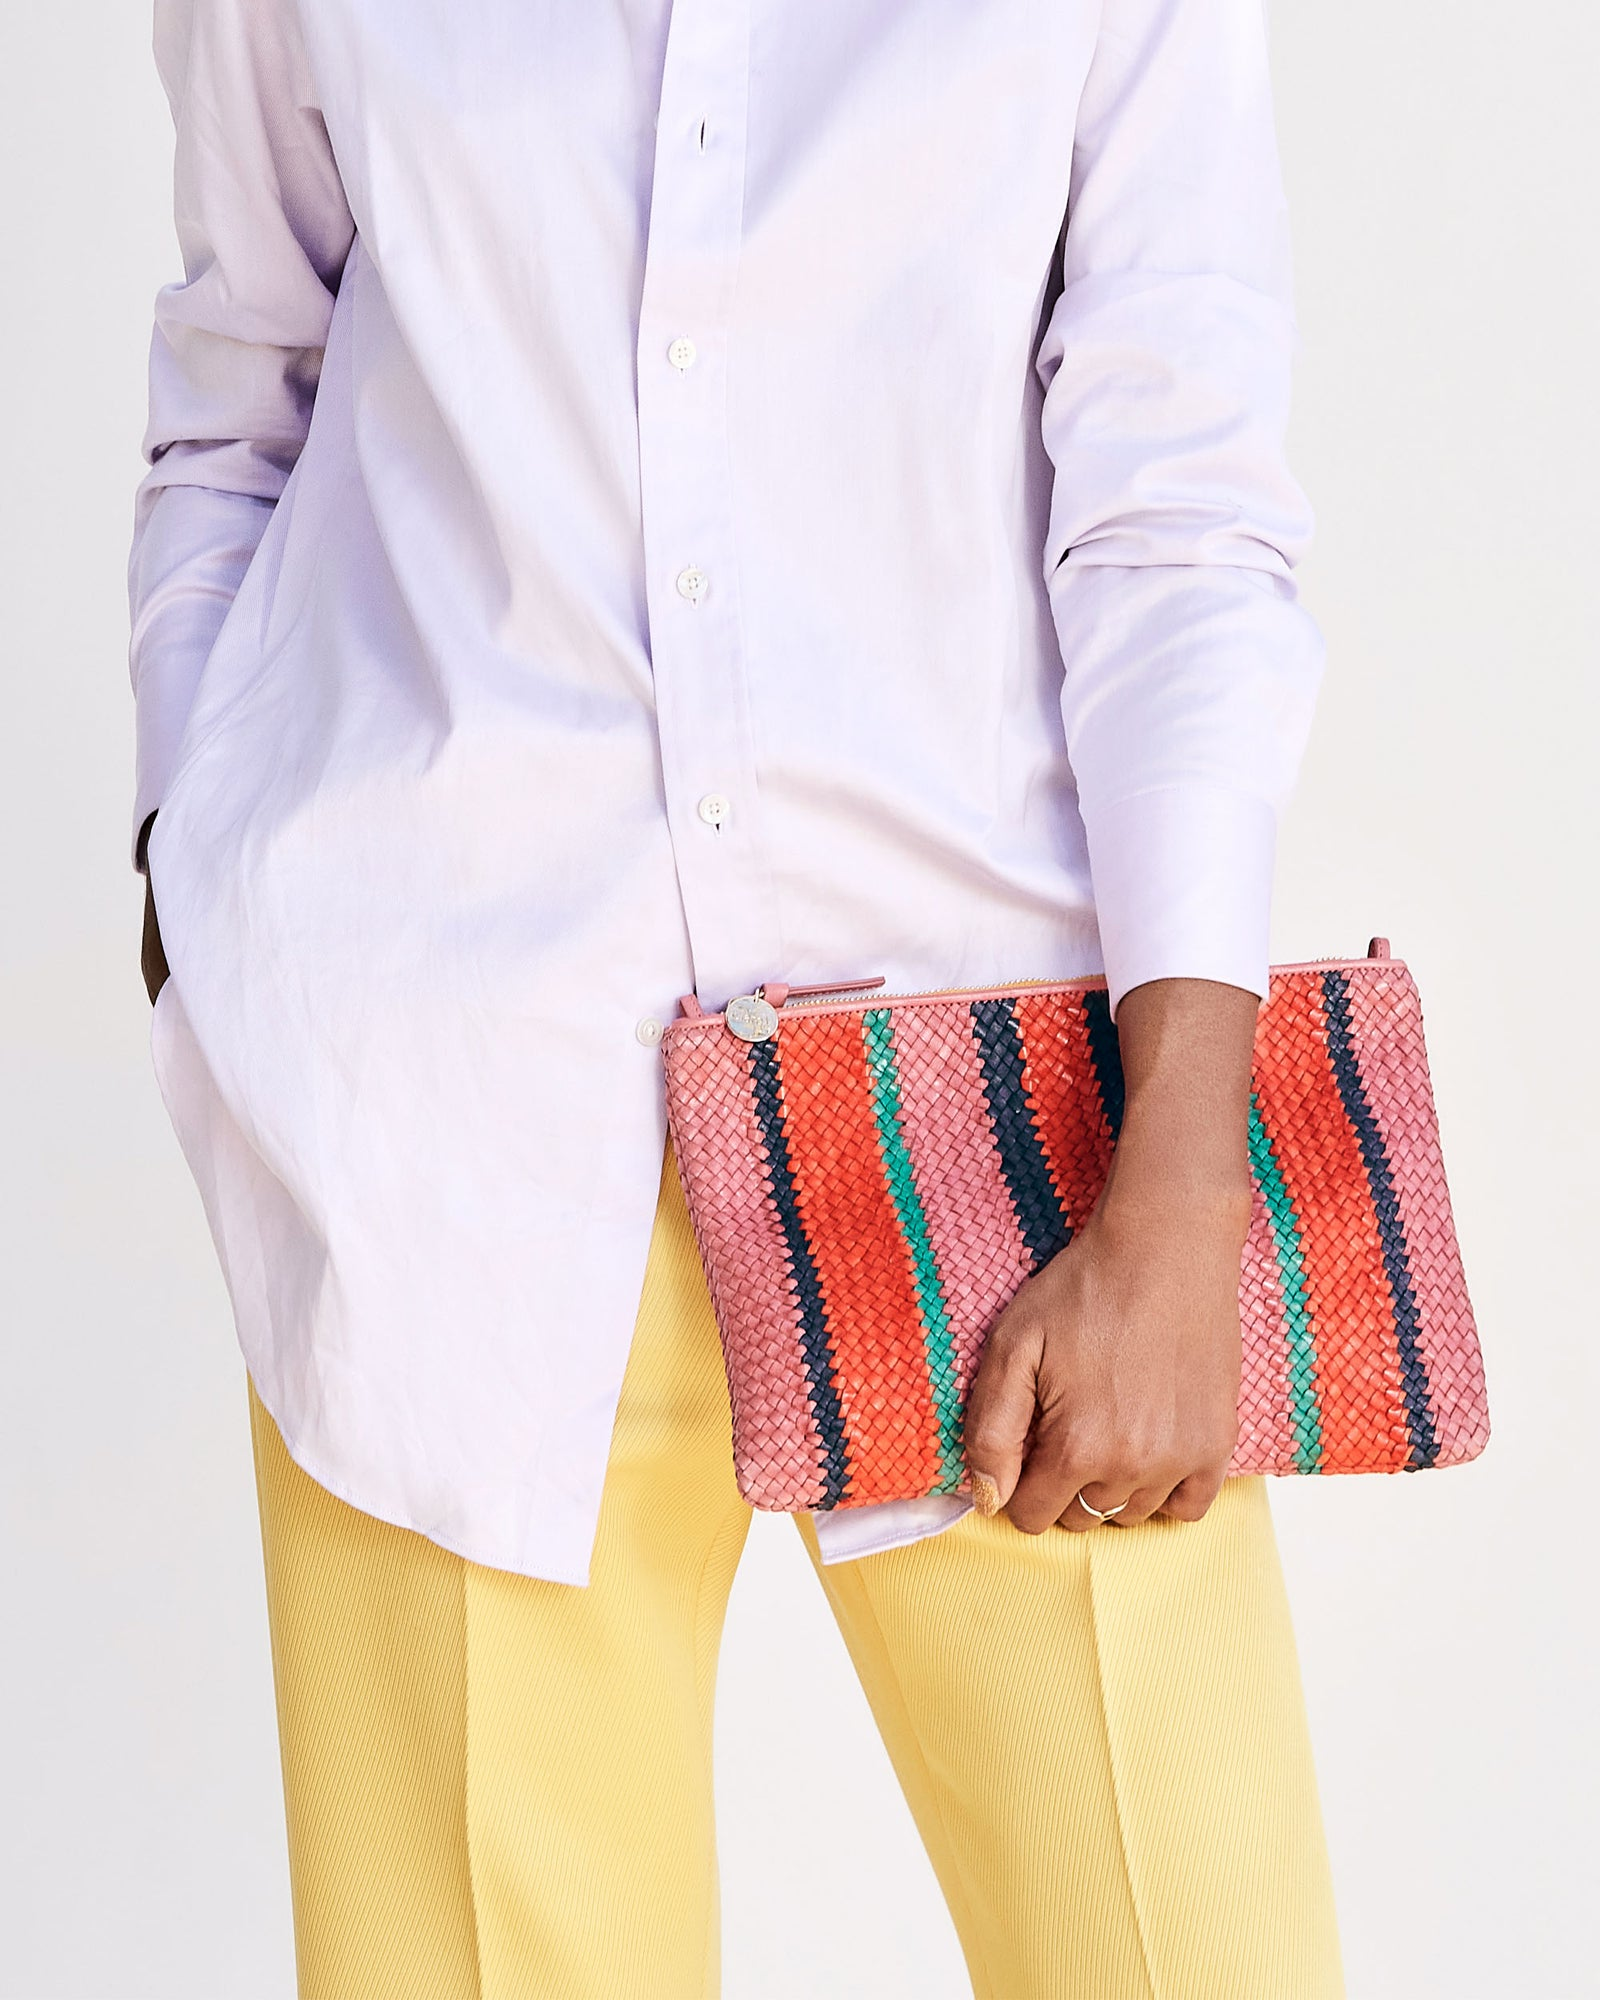 Petal Woven Flat Clutch on MeccaPetal with Poppy, Navy & Mint Opal Woven Stripes Flat Clutch w/ Tabs - on Mecca